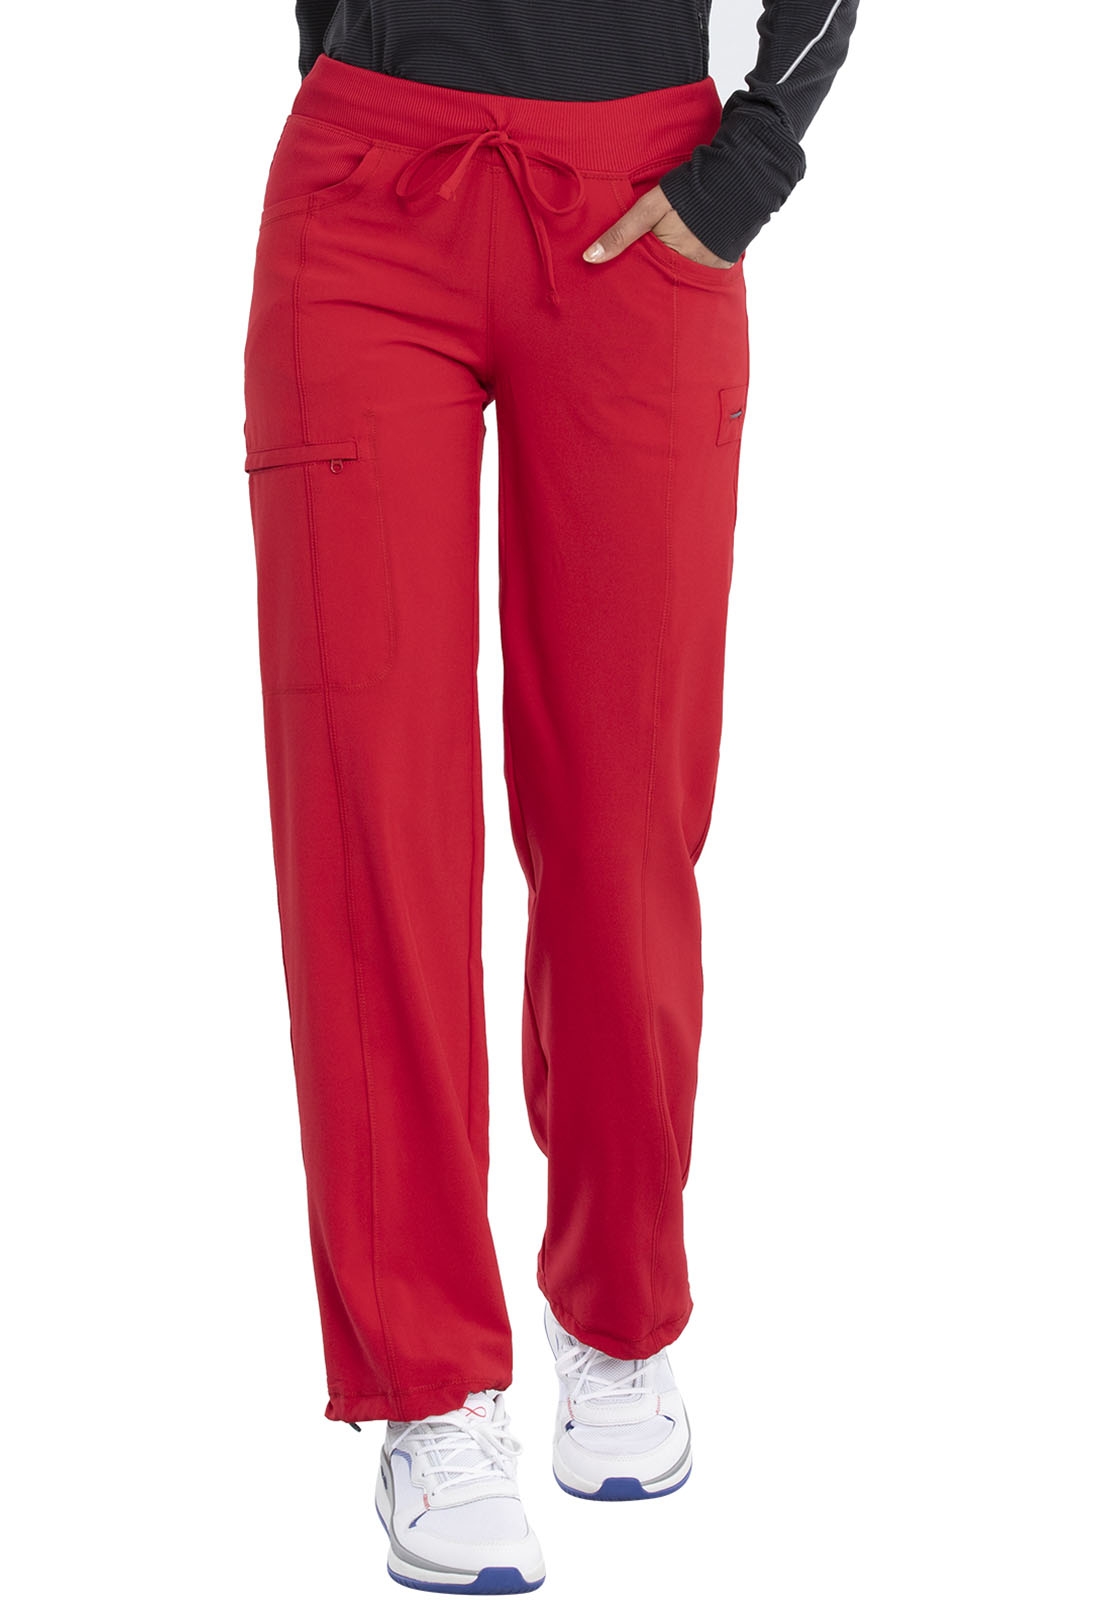 3d398db1182 Infinity Low Rise Straight Leg Drawstring Pant in Red 1123A-RED from ...